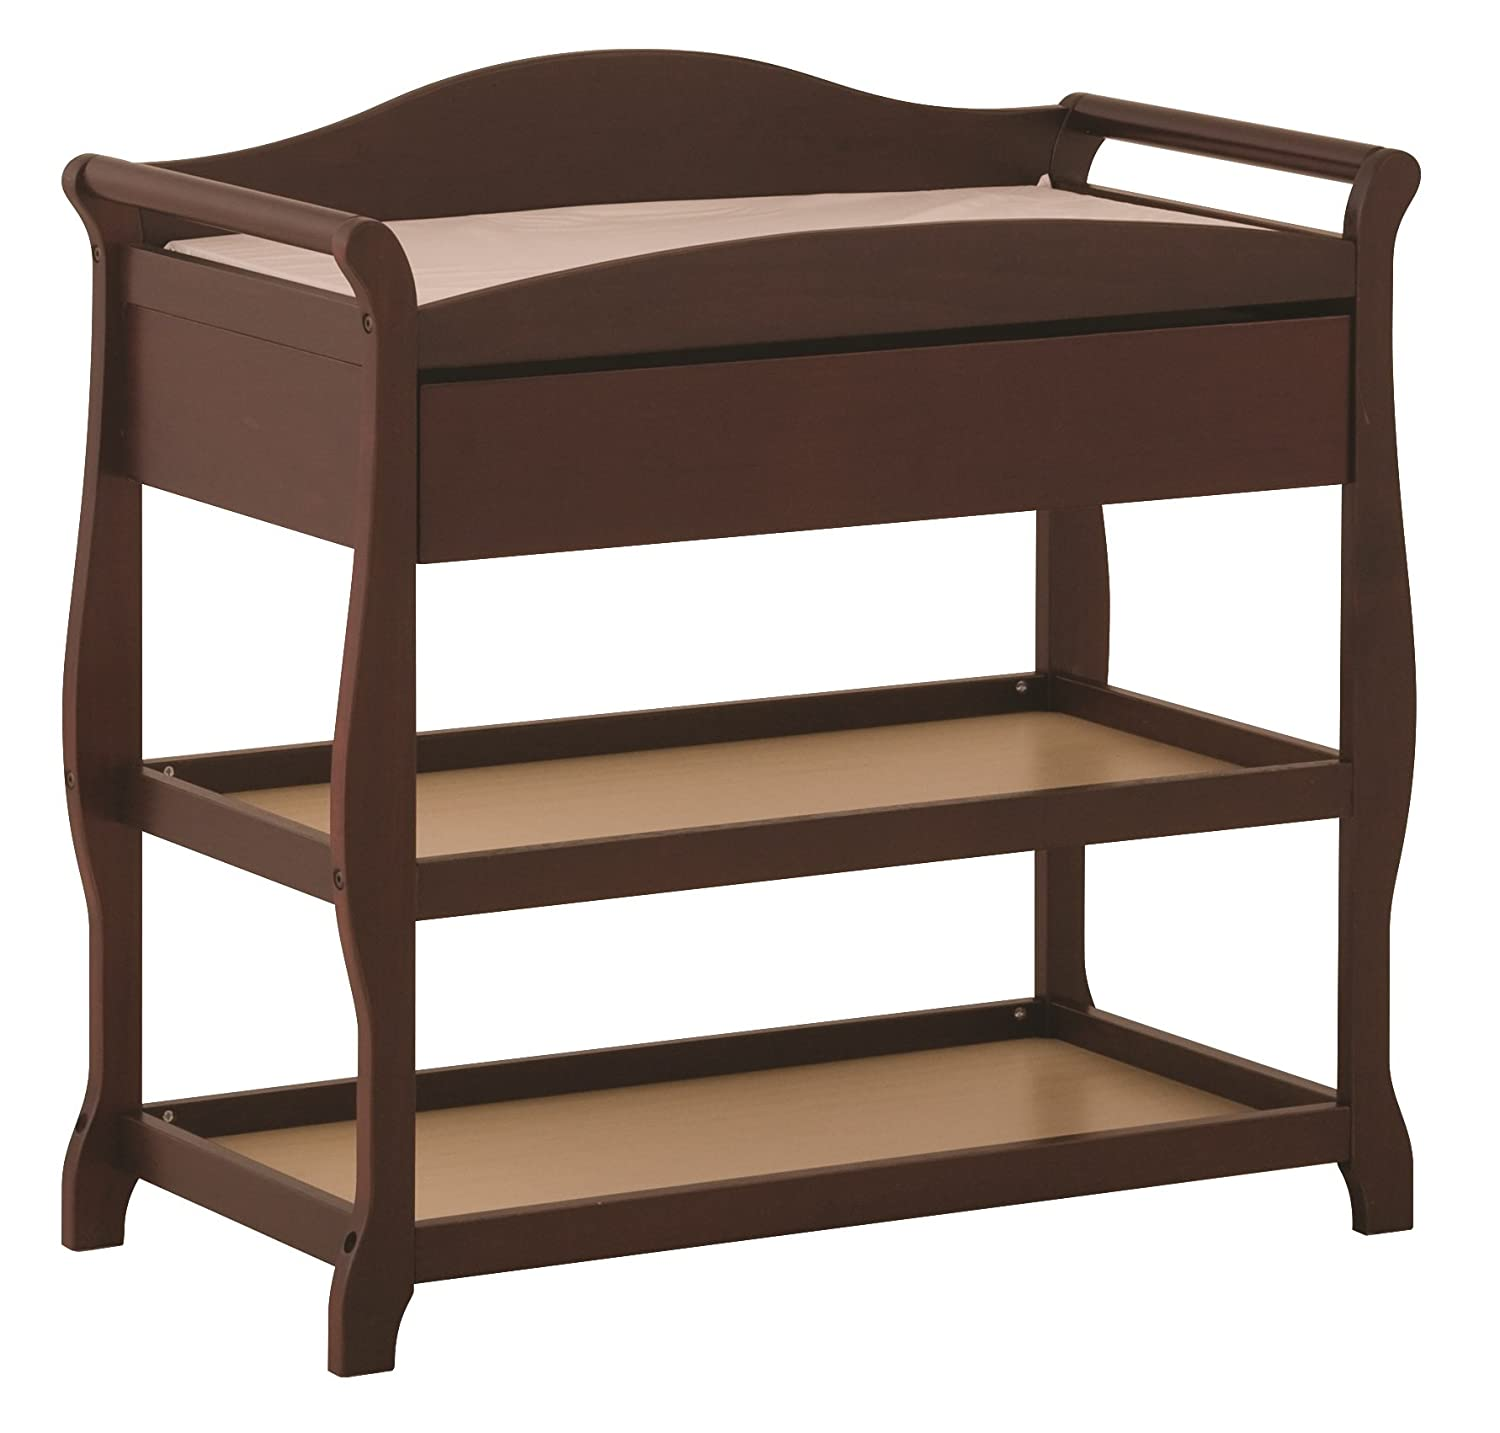 B00029TCWG Storkcraft Aspen Changing Table with Drawer, Cherry, Sleigh Design Changing Table with Changing Pad and Safety Strap, Oversized Drawer and Two Storage Shelves 71Cj7N0r91L